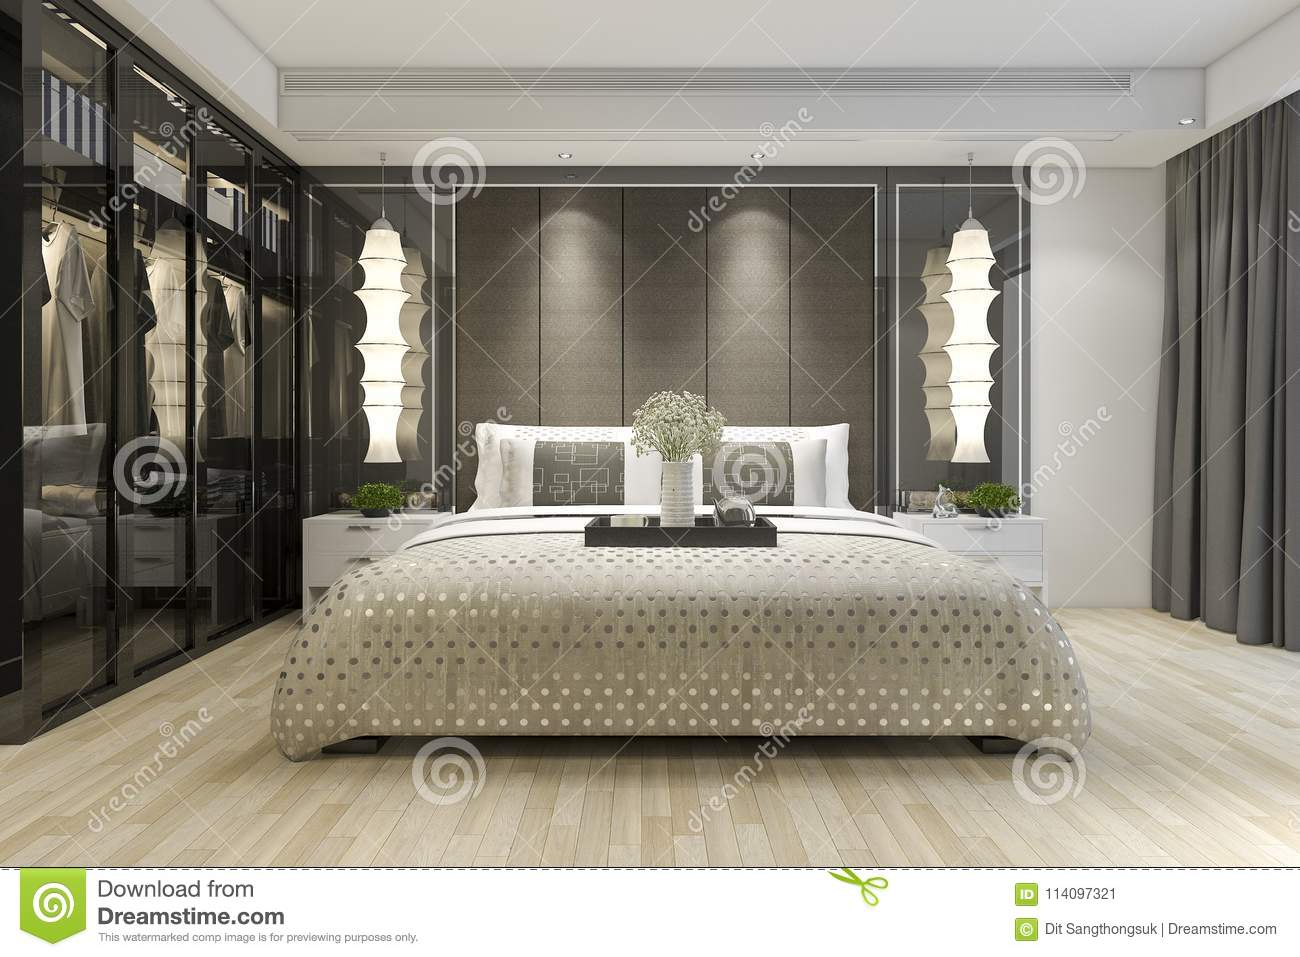 3d Rendering Luxury Modern Bedroom Suite Tv With Wardrobe And Walk throughout 13 Genius Ways How to Build Luxury Modern Bedroom